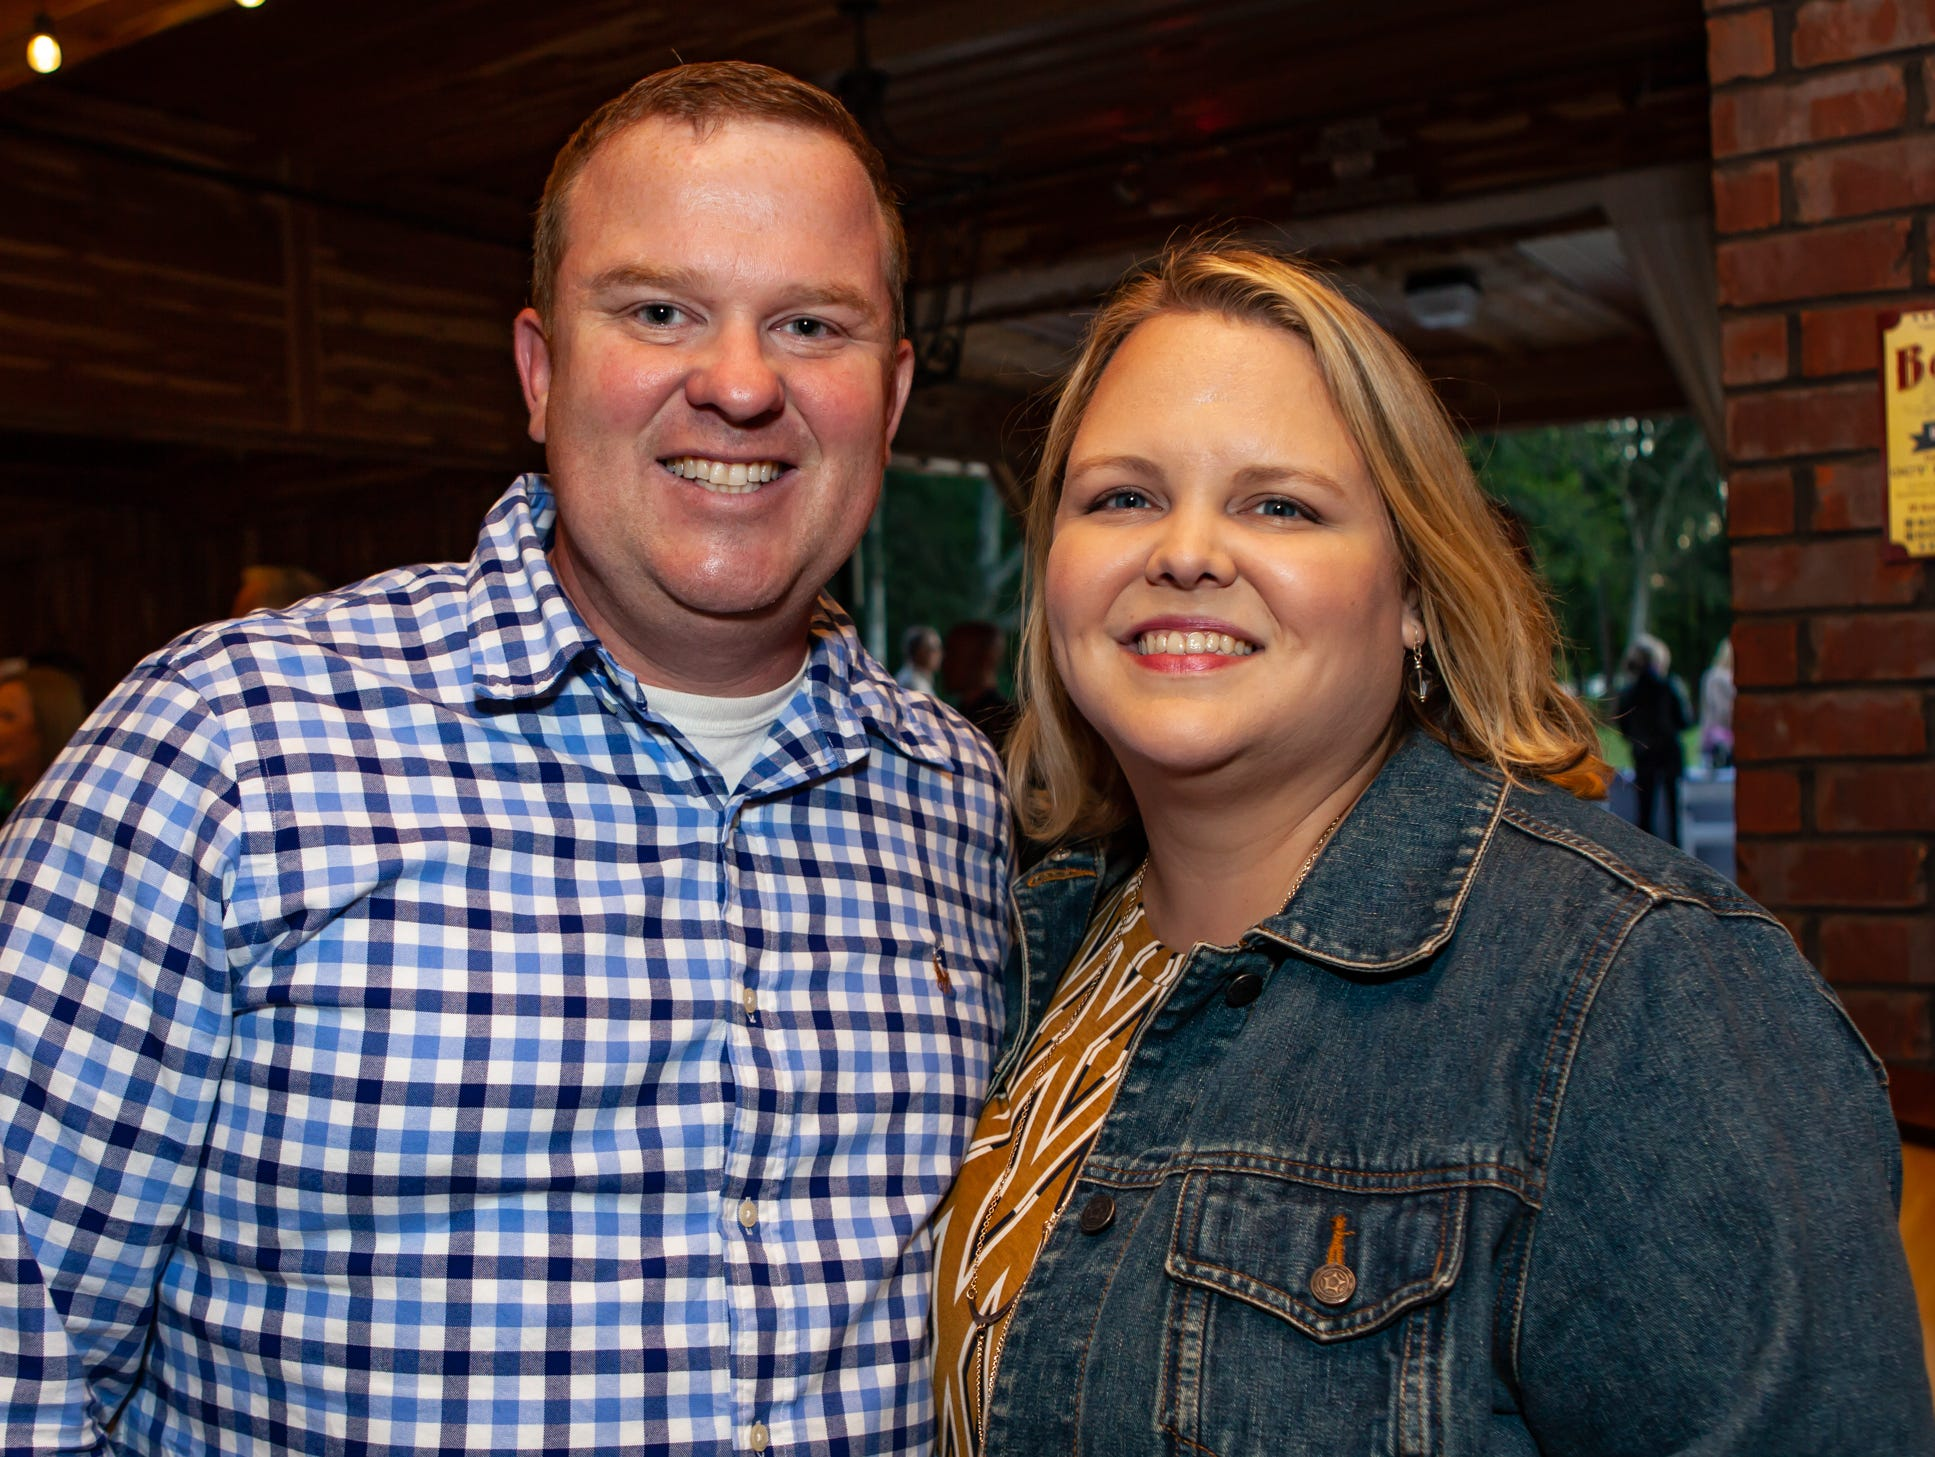 Boots and Brews: Bryan and Erica Neal